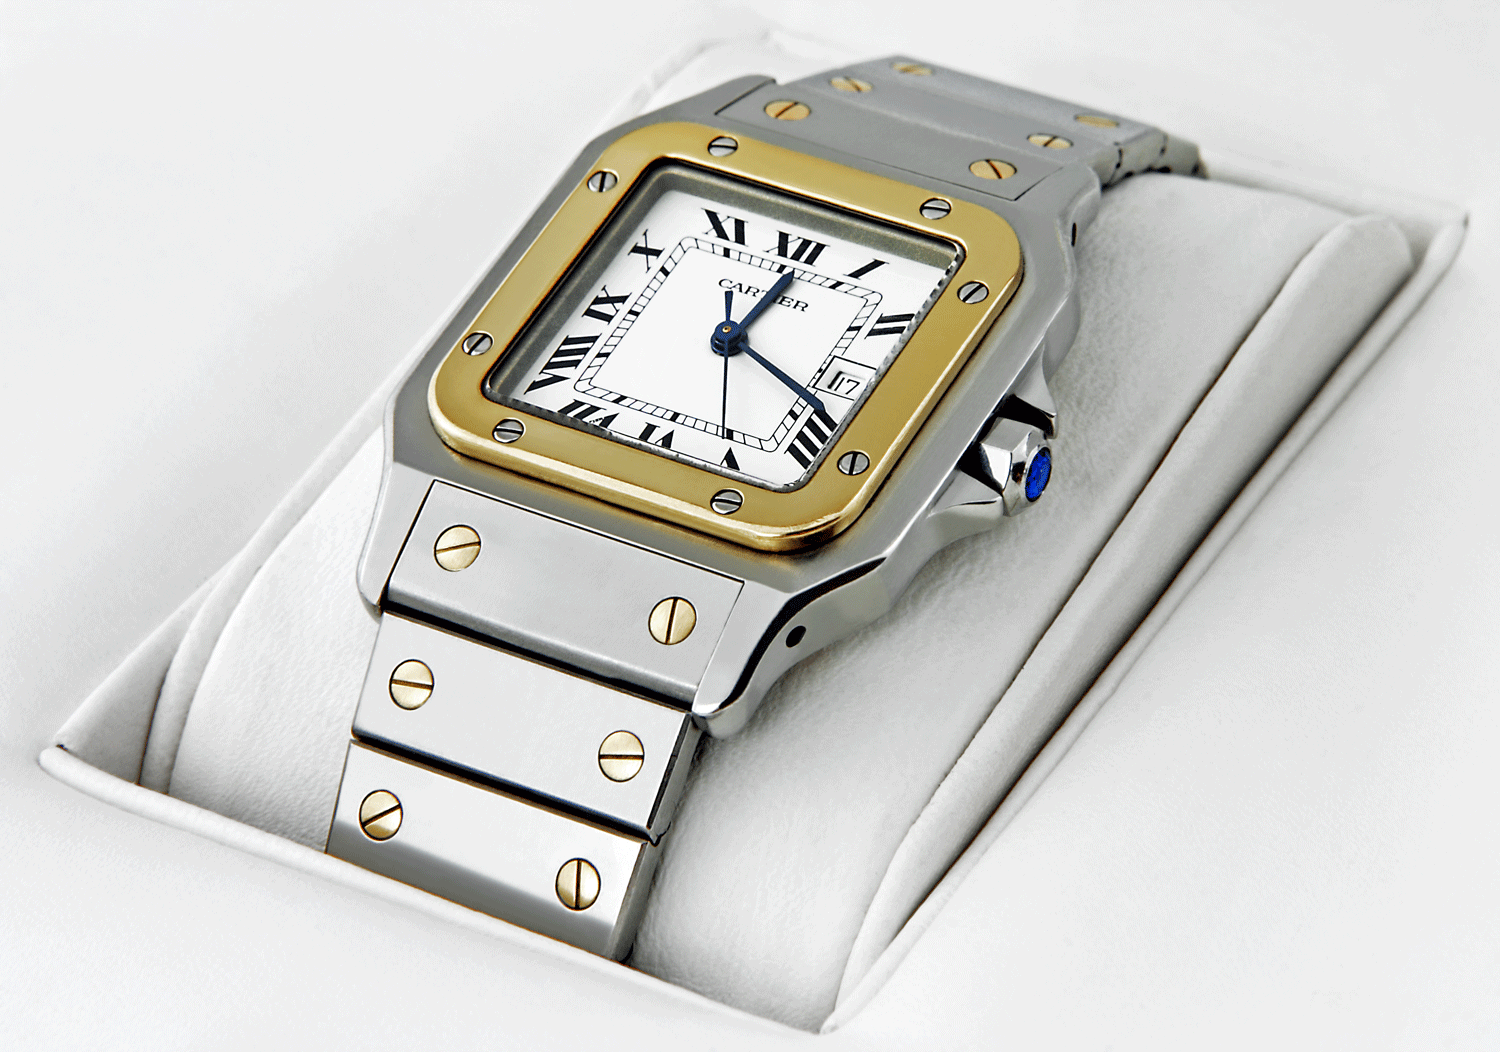 Cartier product shot